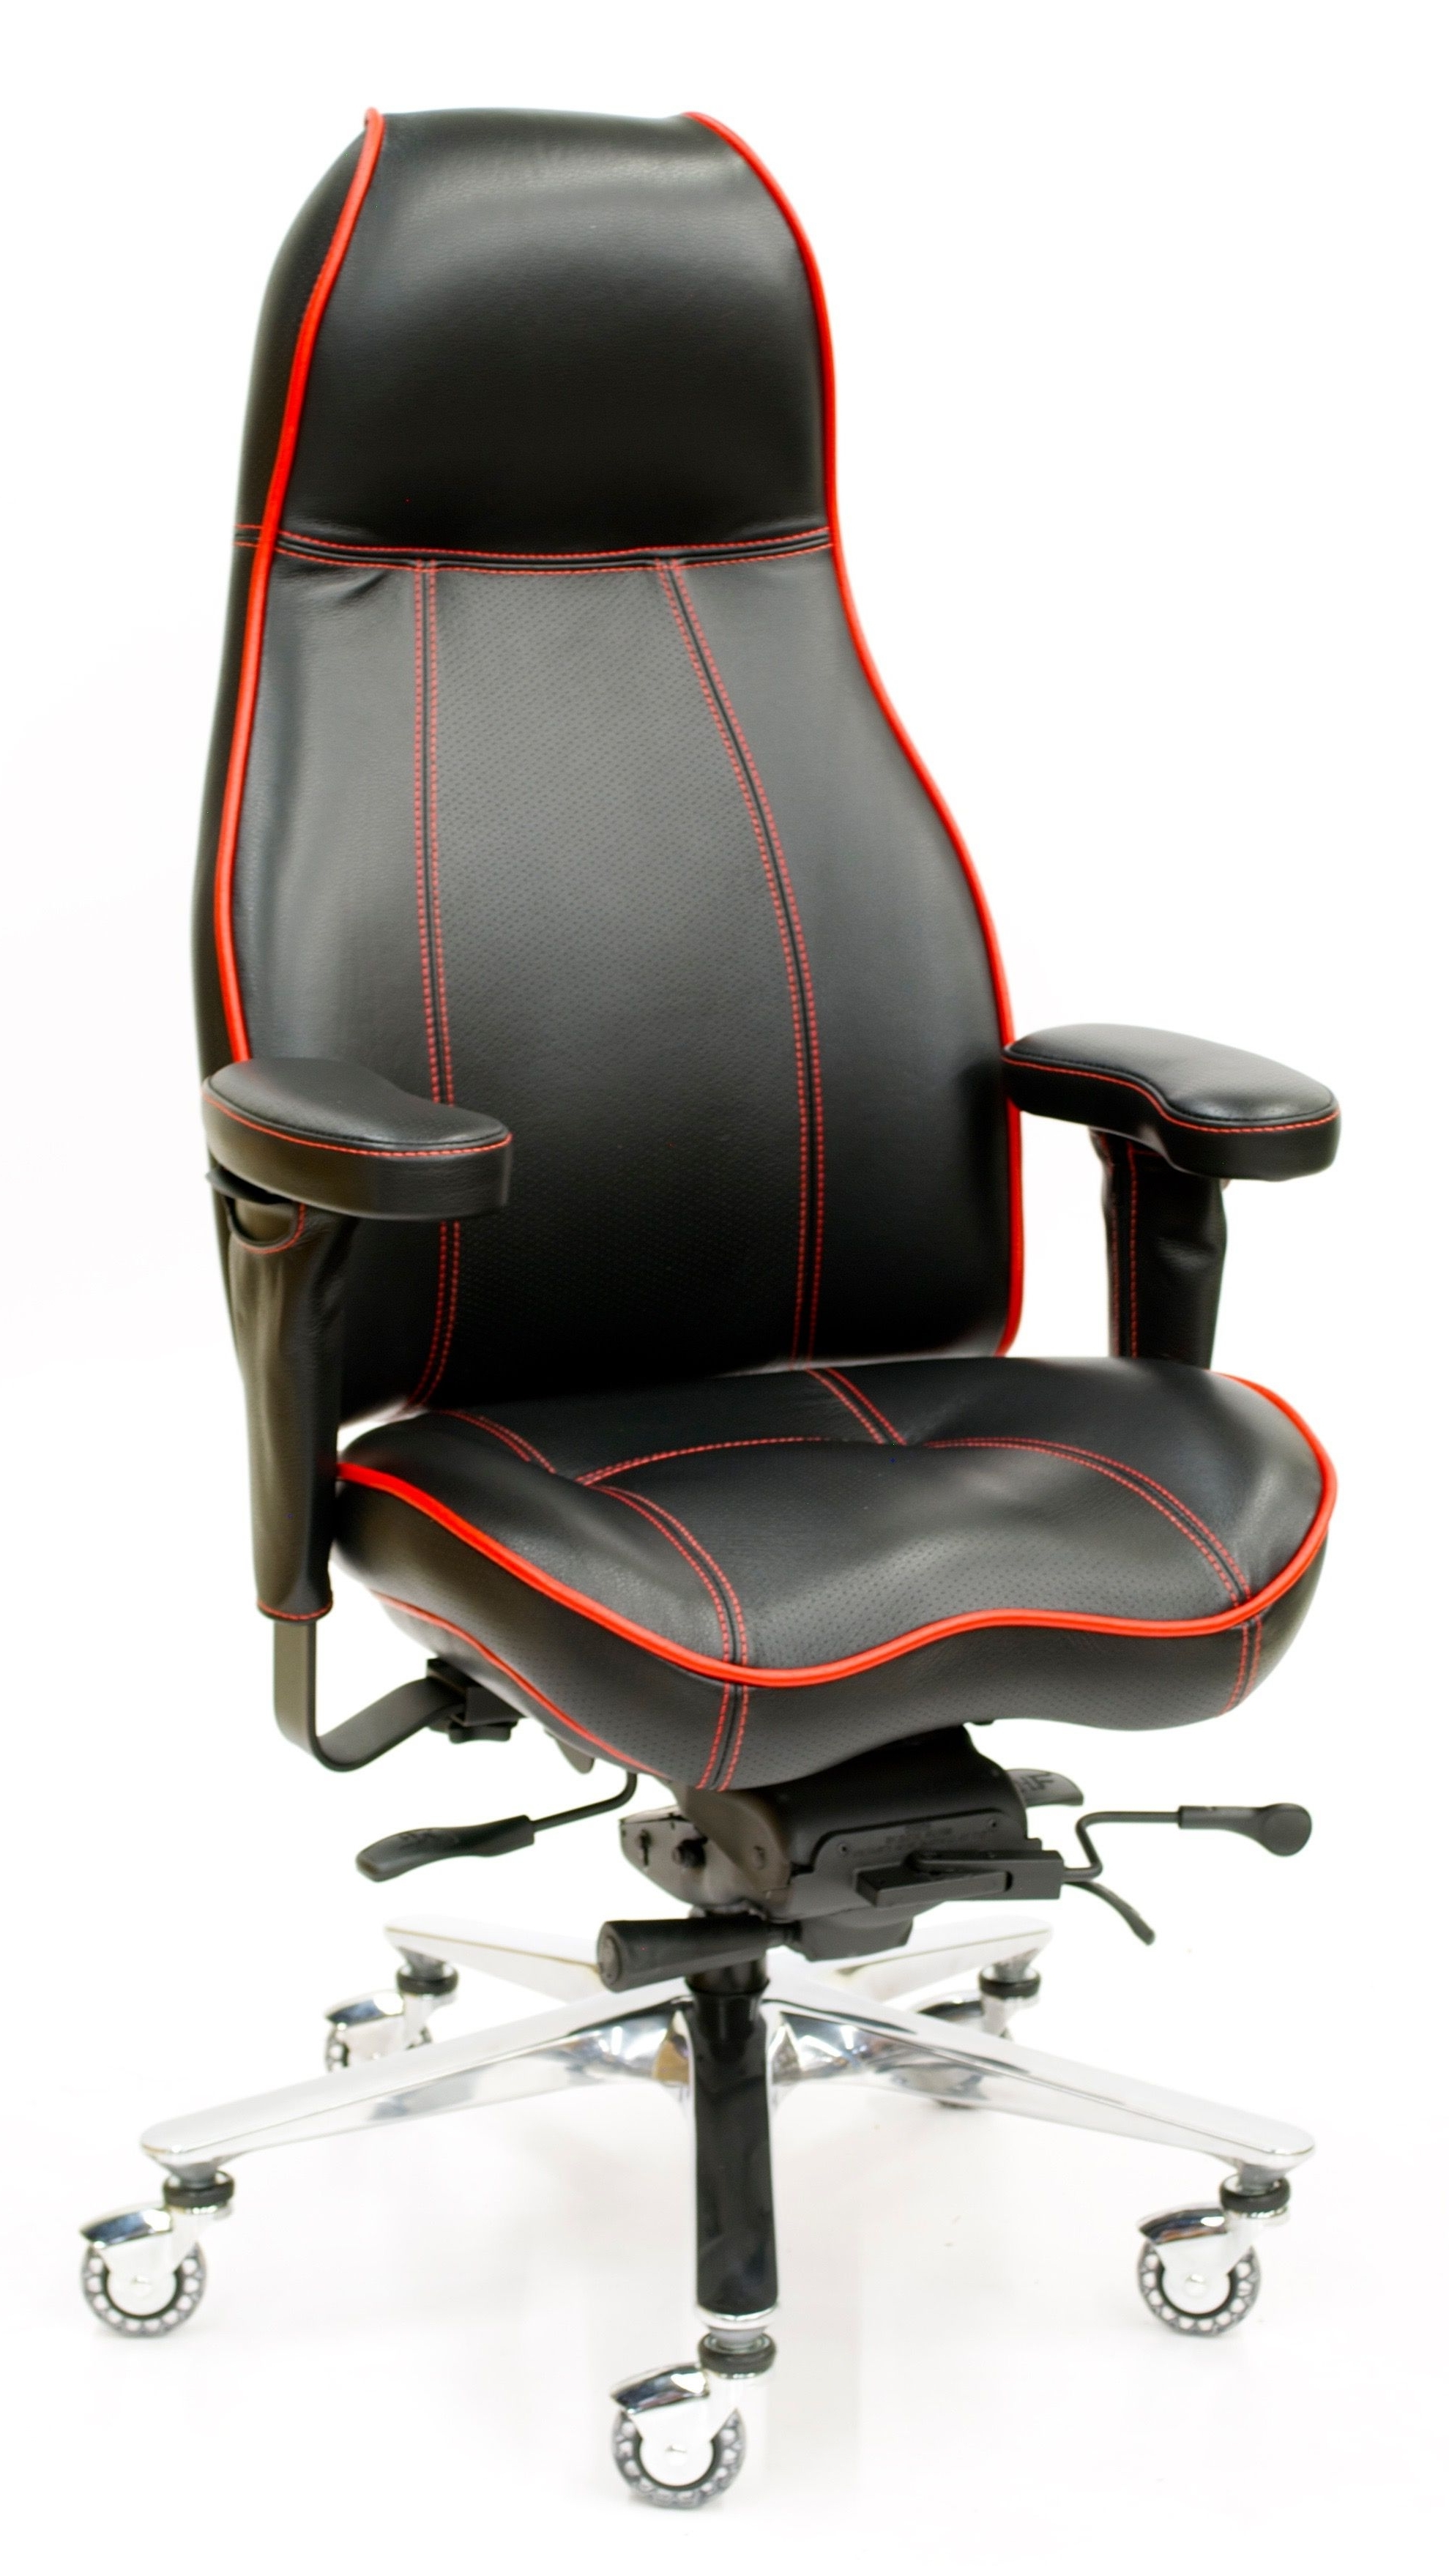 Fashionable Thick Red Contrast Stitching On 2390 High Back Ultimate Executive Intended For Premium Executive Office Chairs (View 7 of 20)